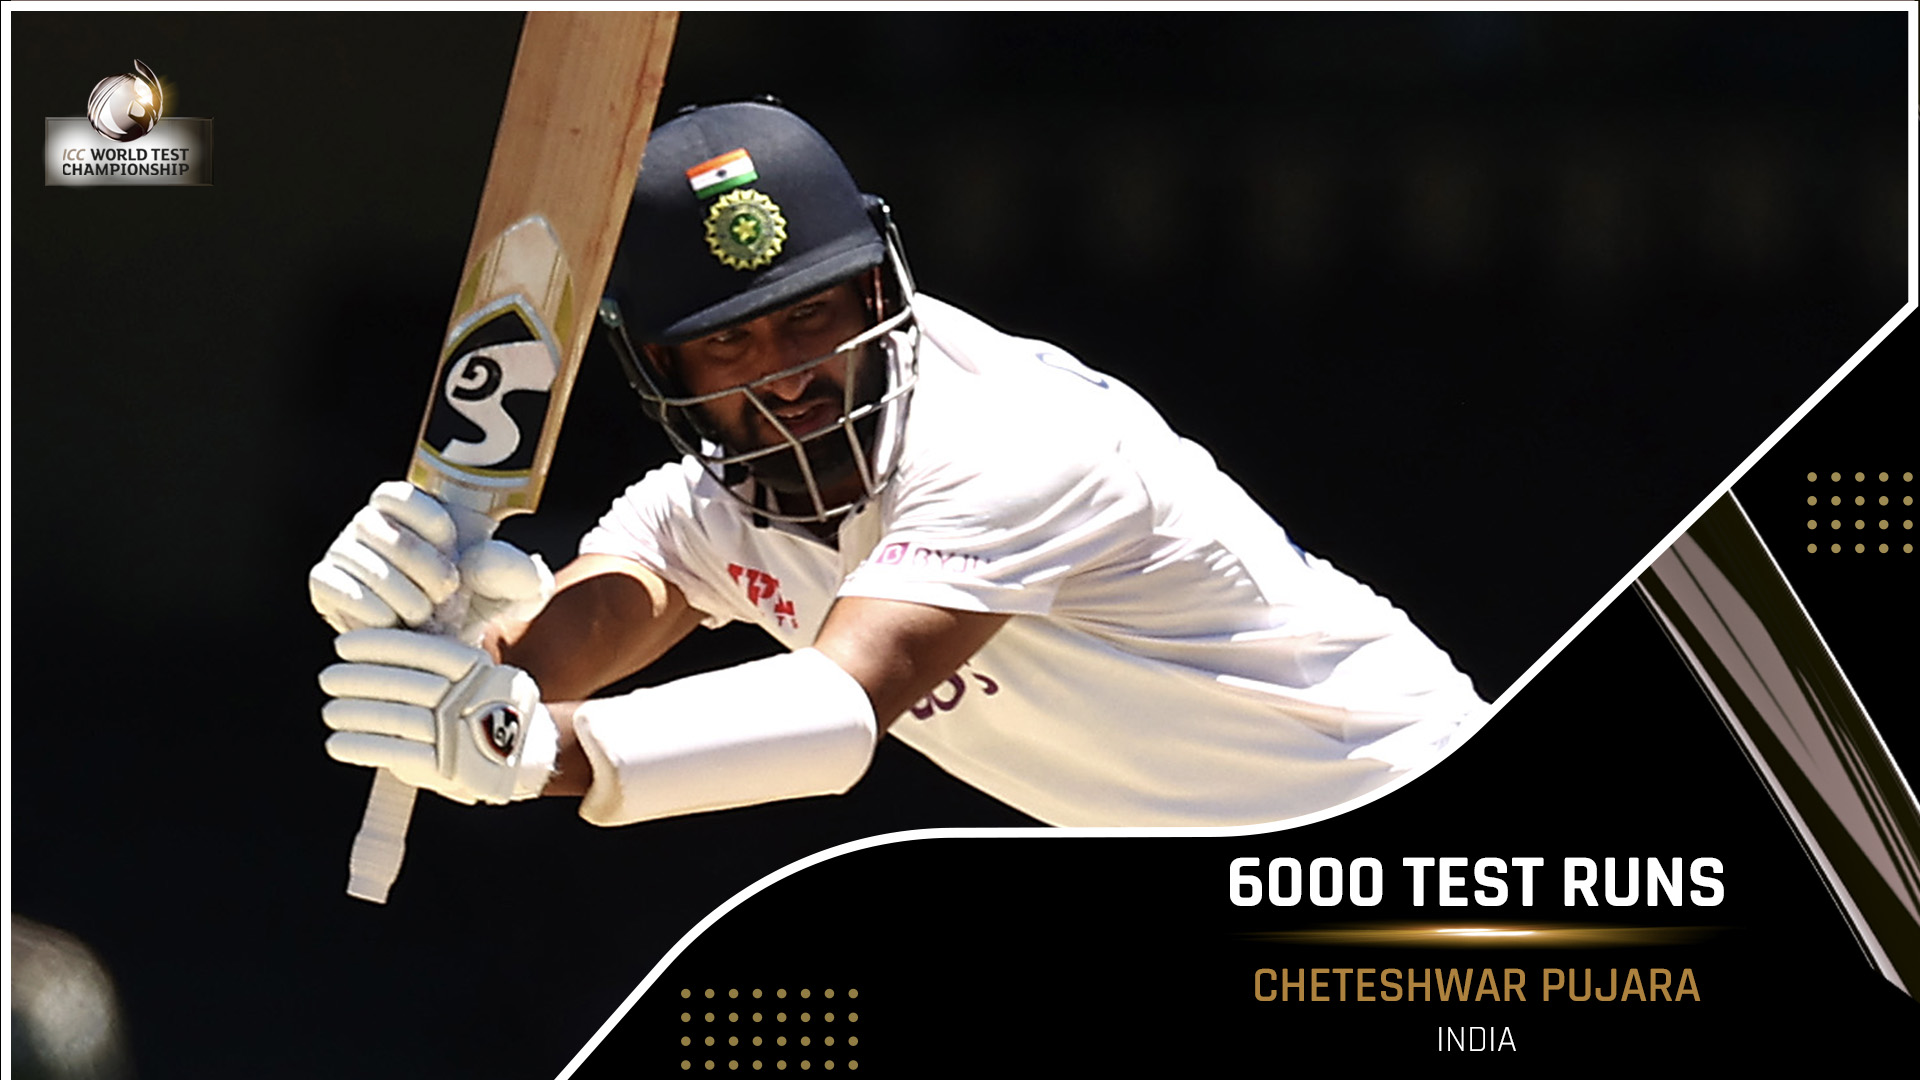 Cheteshwar Pujara has become the 11th Indian batsman to reach 6000 runs in Test cricket! ICC Twitter